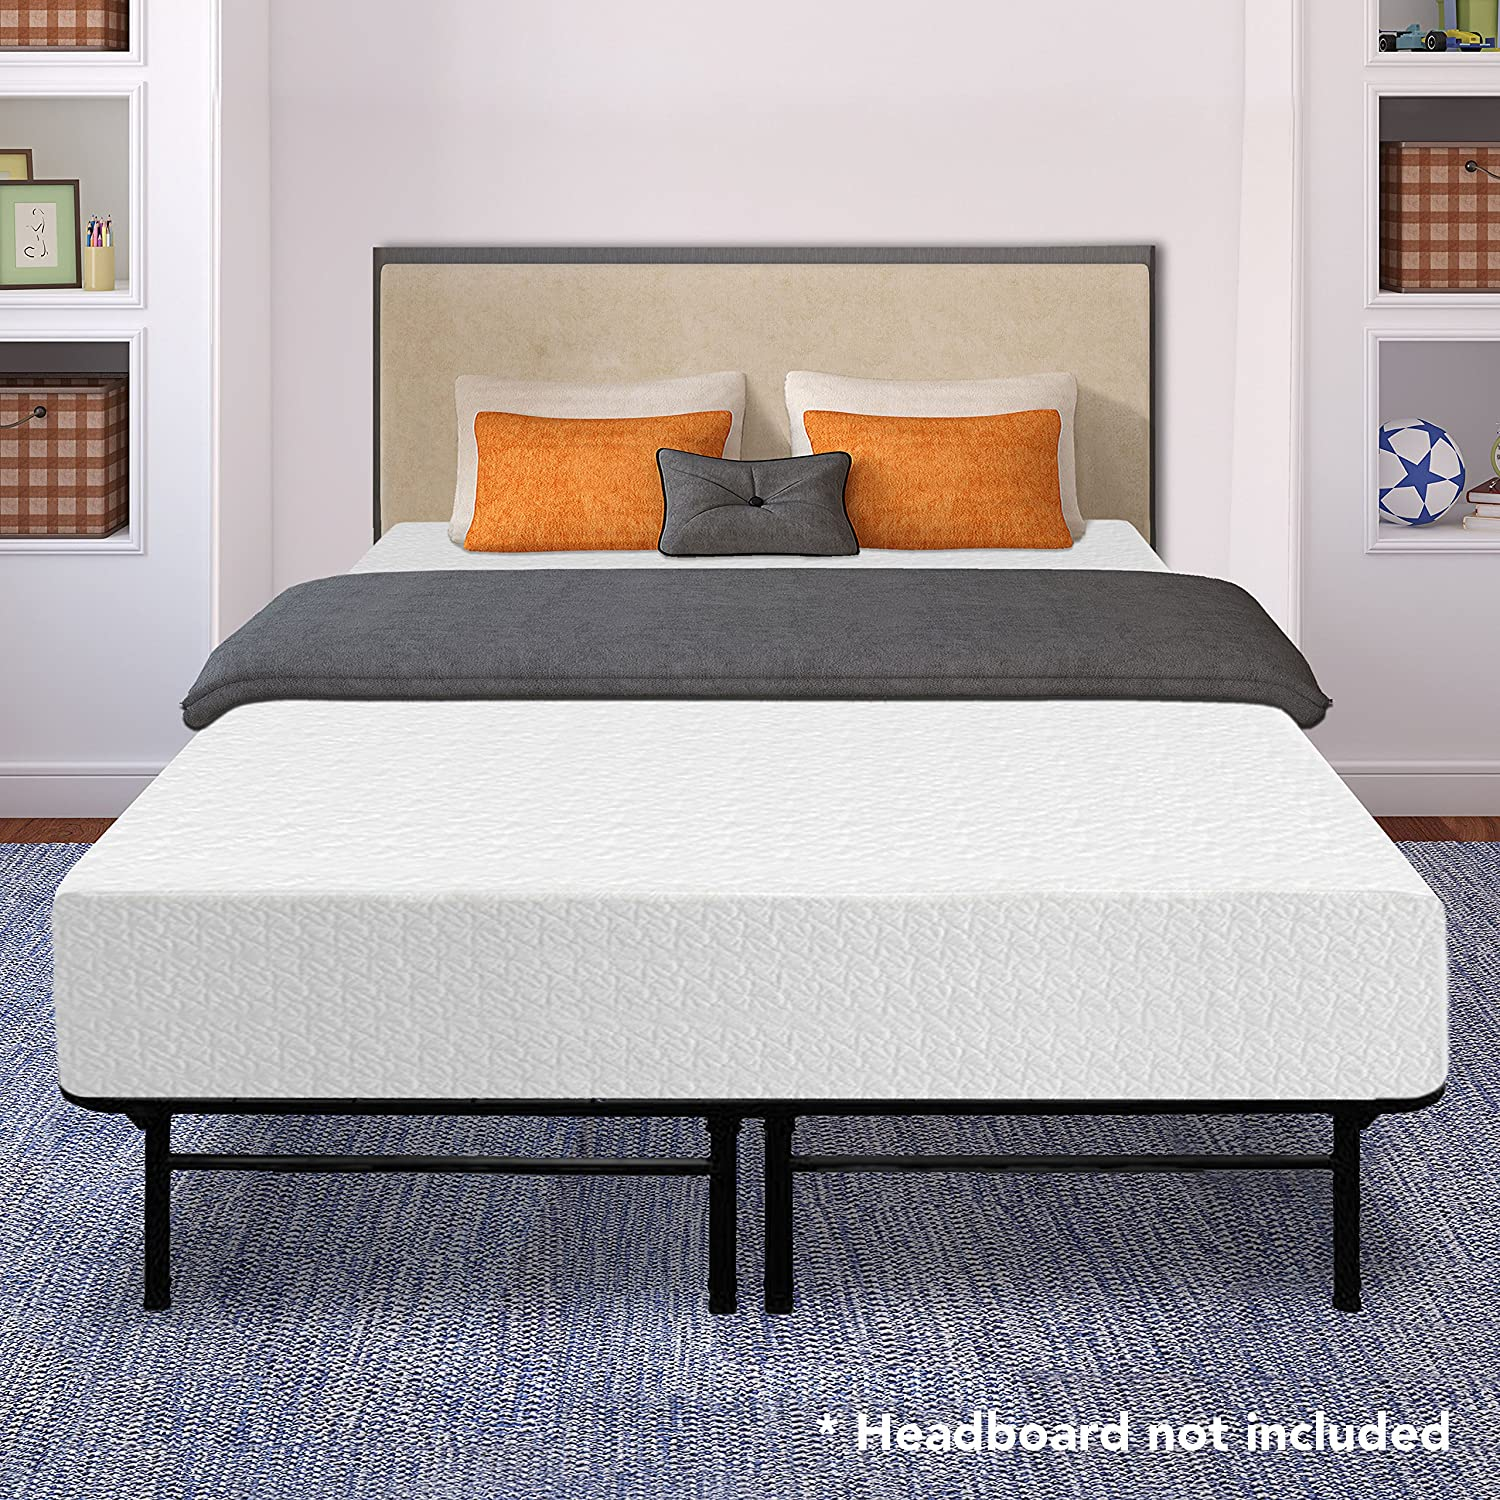 "Best Price Mattress 12"" Memory Foam Mattress and 14"" Premium Steel Bed Frame/Foundation Set, Queen"